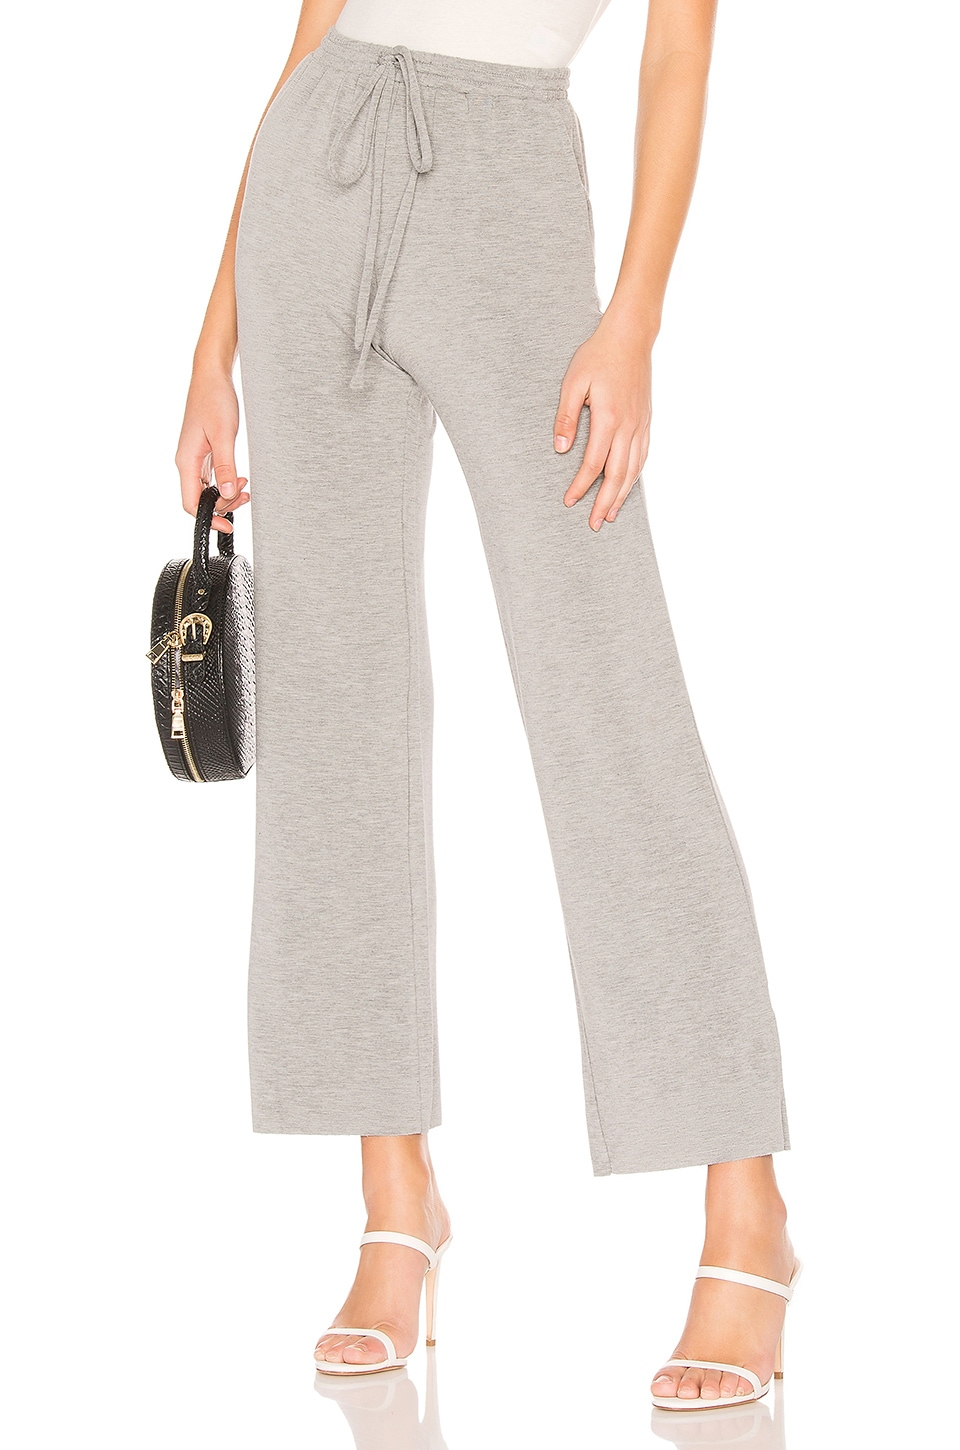 Lovers + Friends Kassidy Pants in Heather Grey